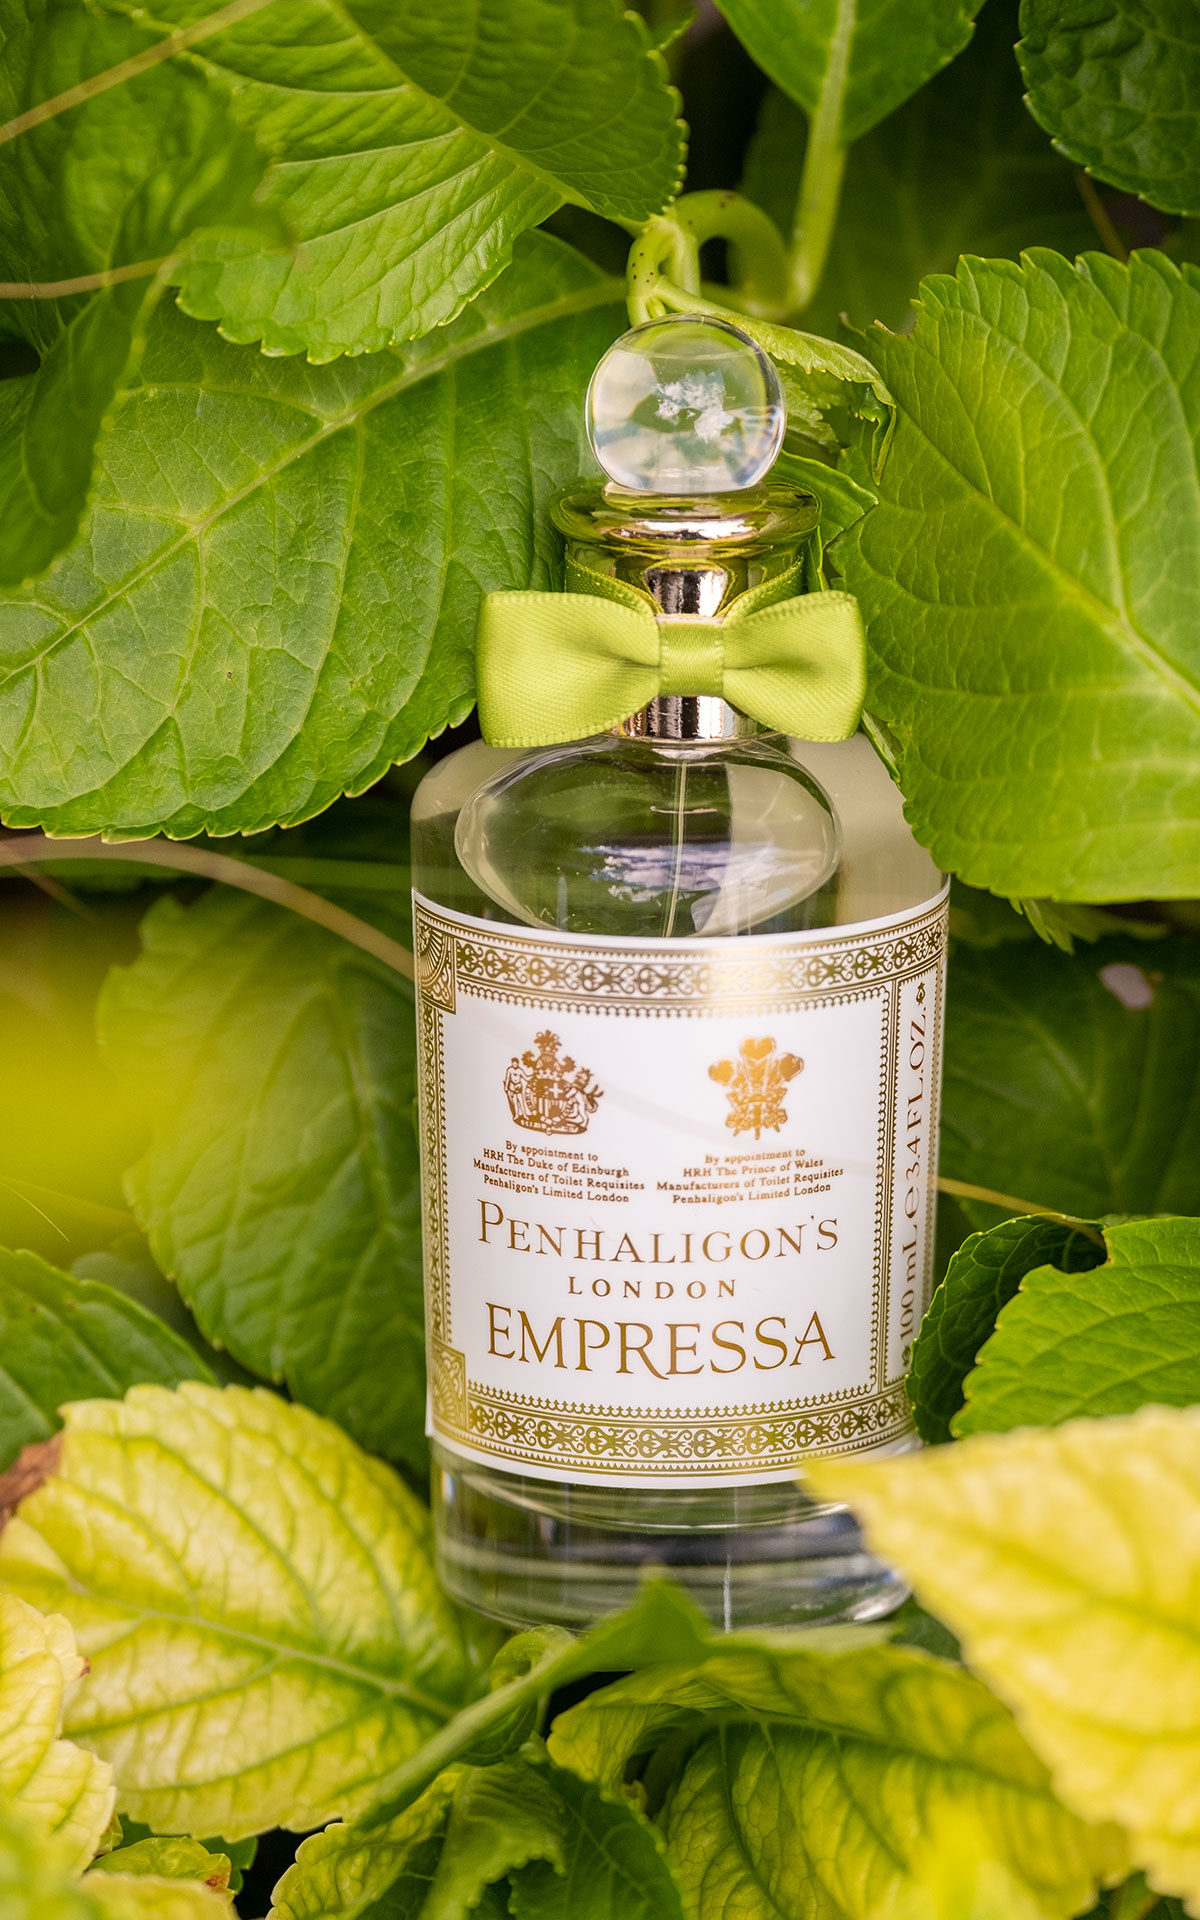 Penhaligon's Empressa 100ml and cream set from Bicester Village